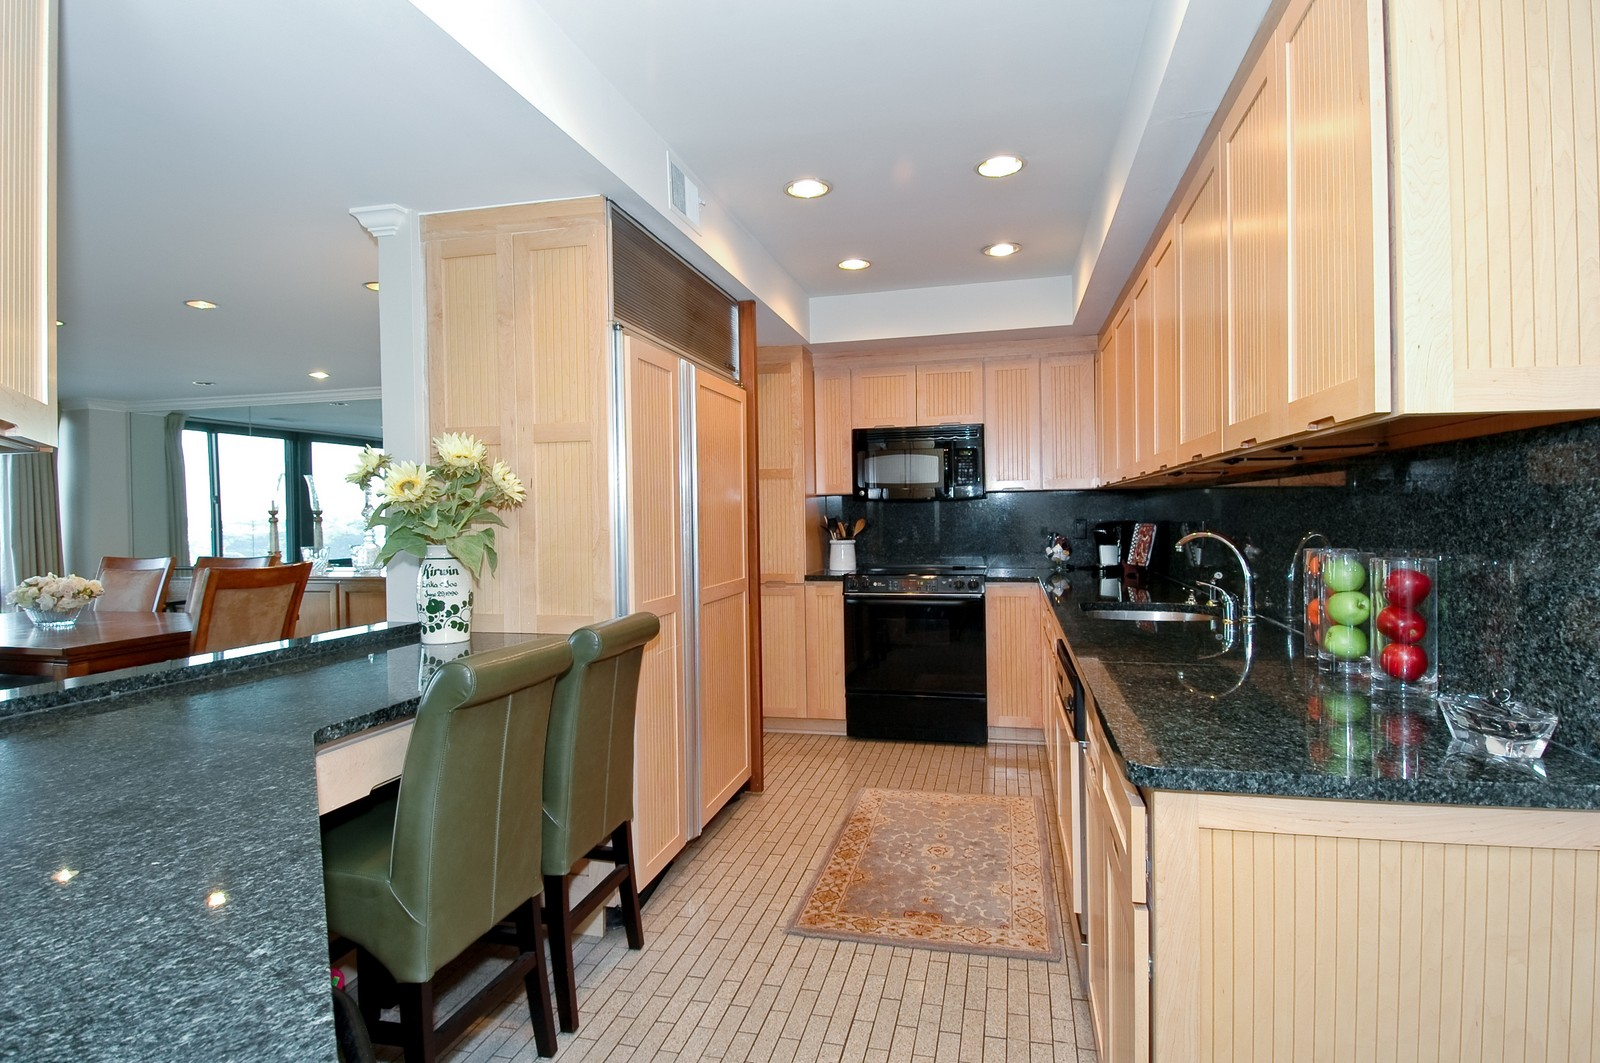 Real Estate Photography - 1700 Grandview Ave, Unit 603, Pittsburgh, PA, 15211 - Kitchen